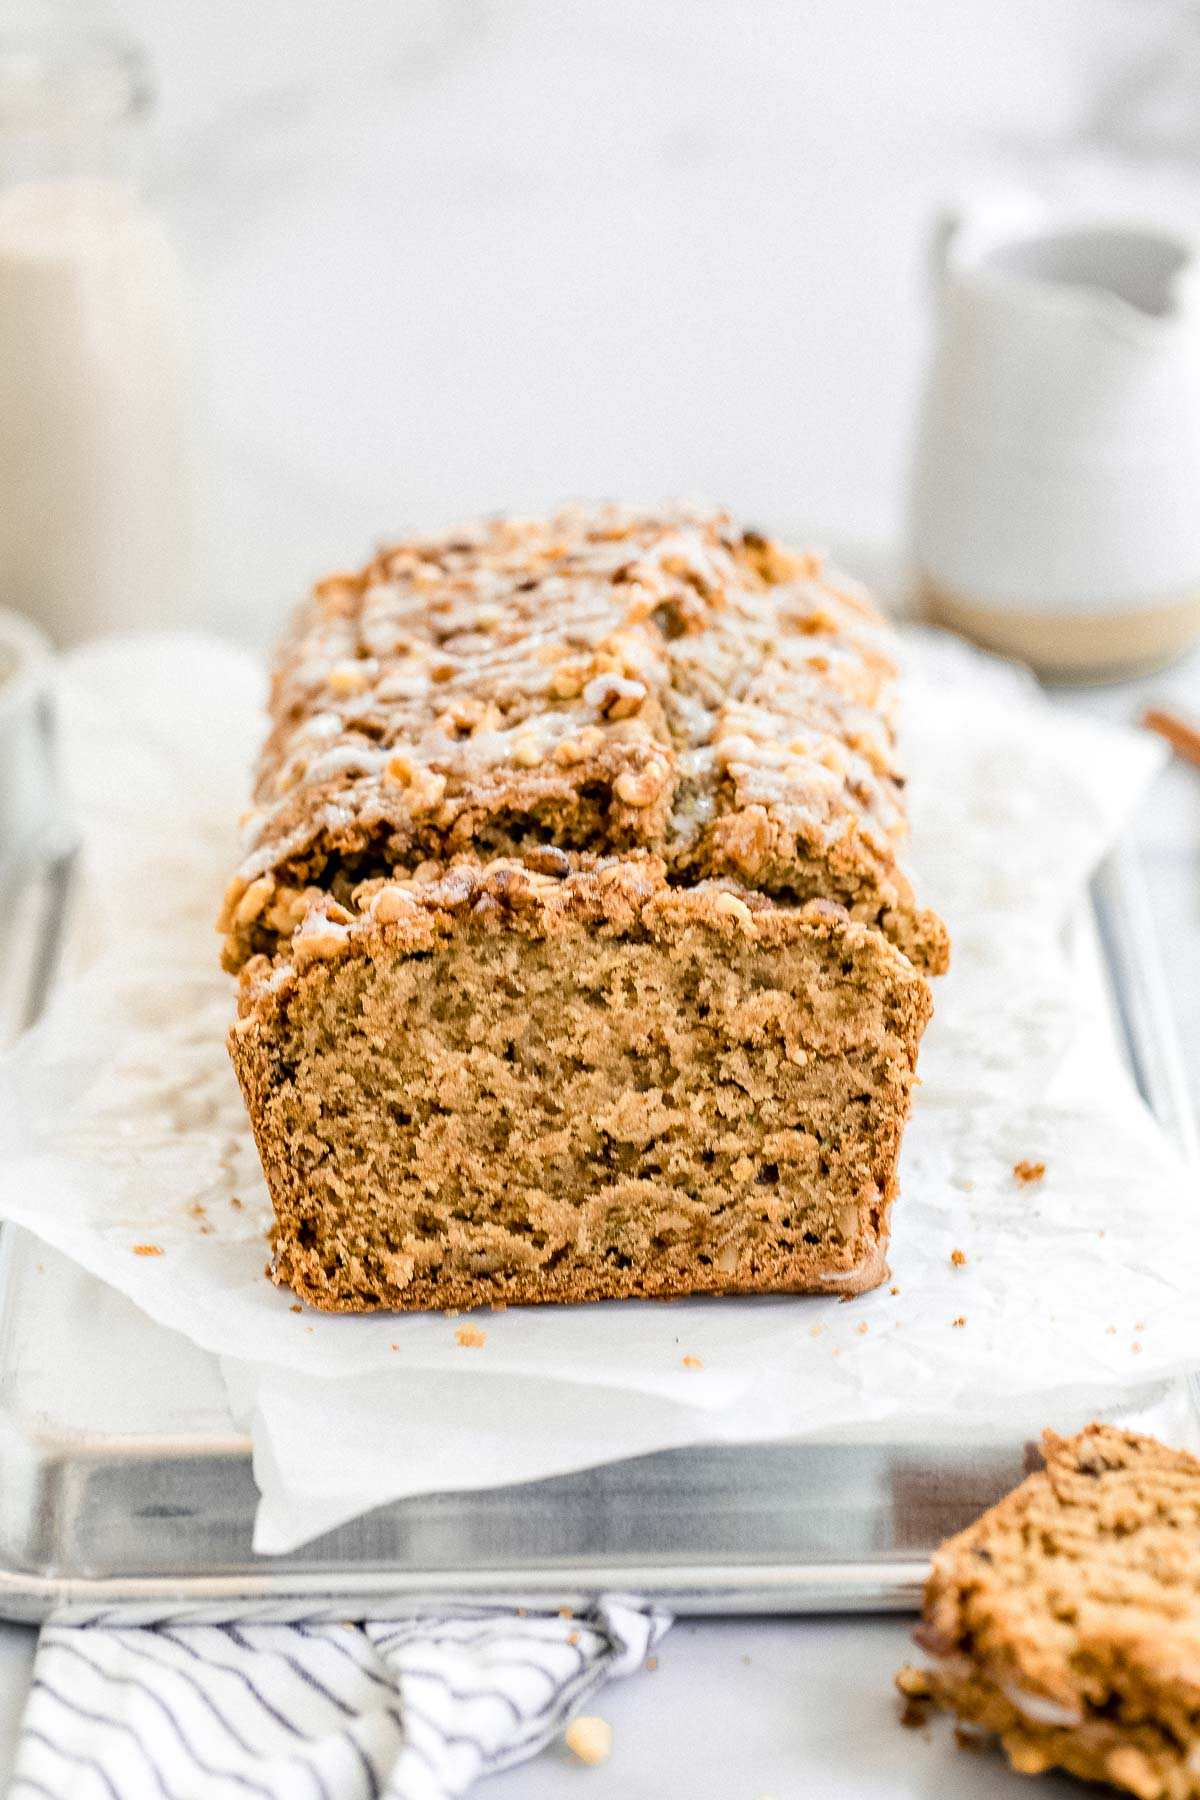 Gluten free zucchini bread with chopped walnuts on top sitting on parchment paper.